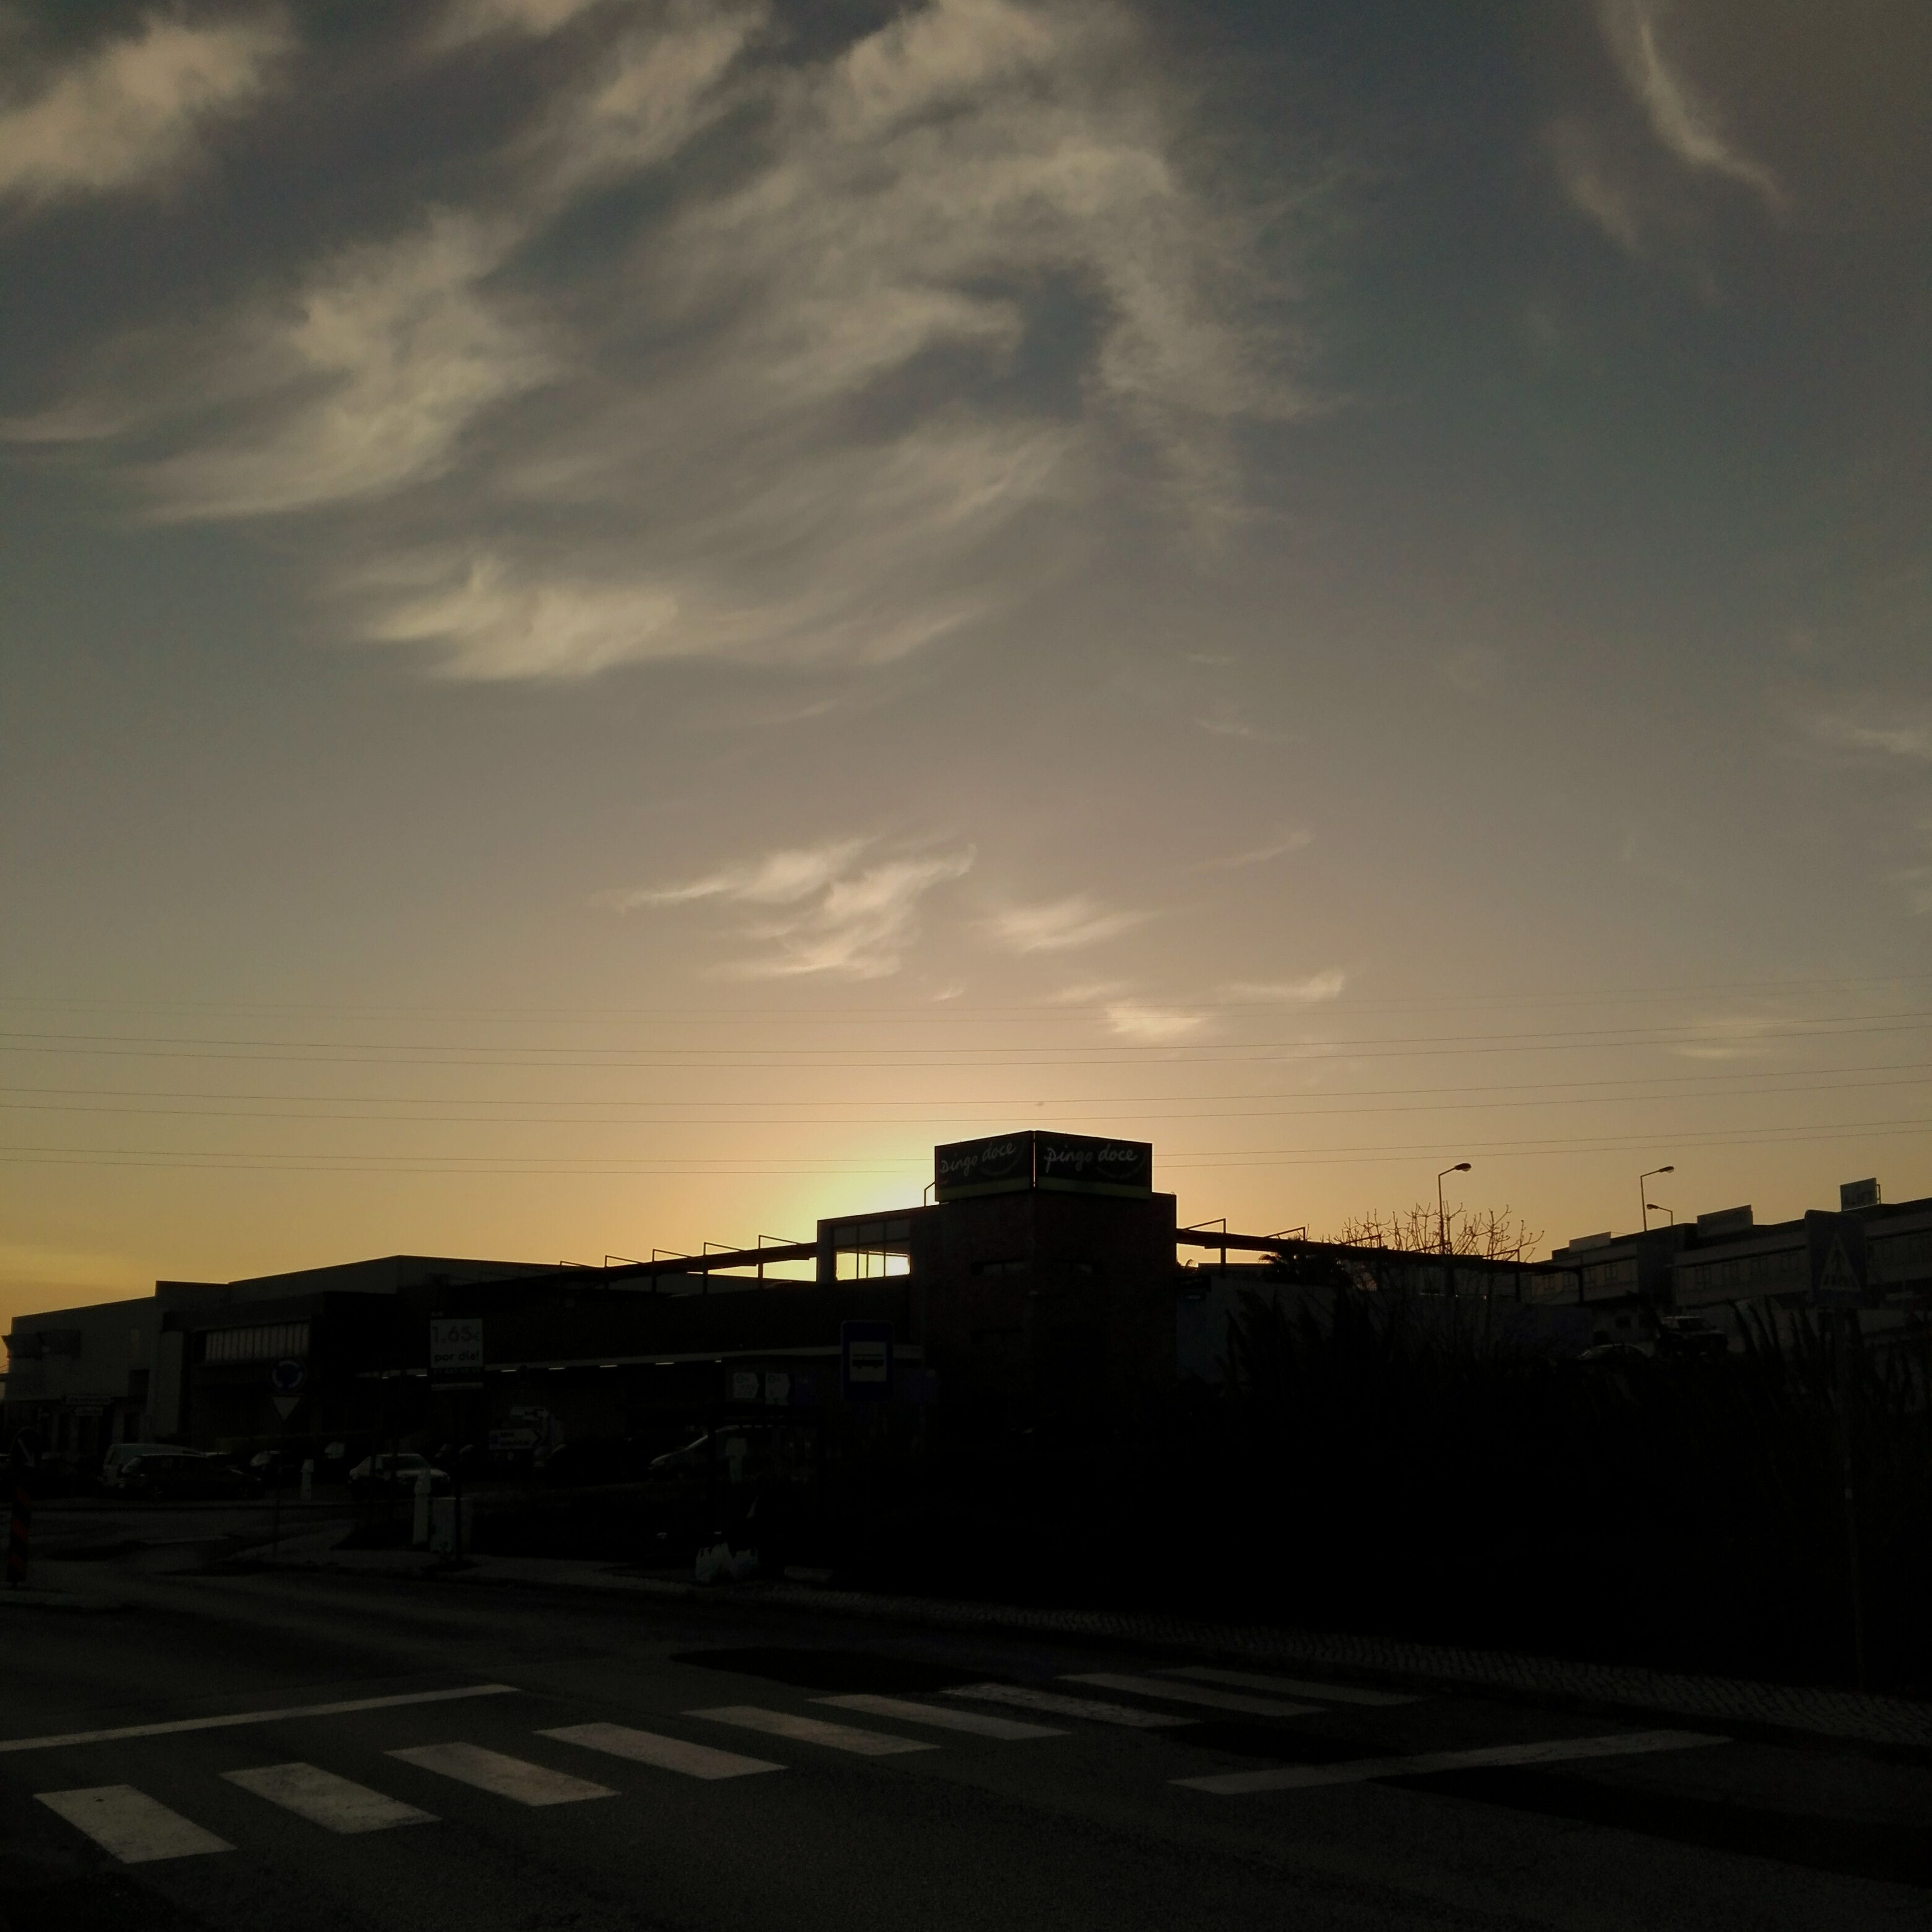 sunset, sky, architecture, built structure, silhouette, no people, building exterior, cloud - sky, outdoors, city, nature, day